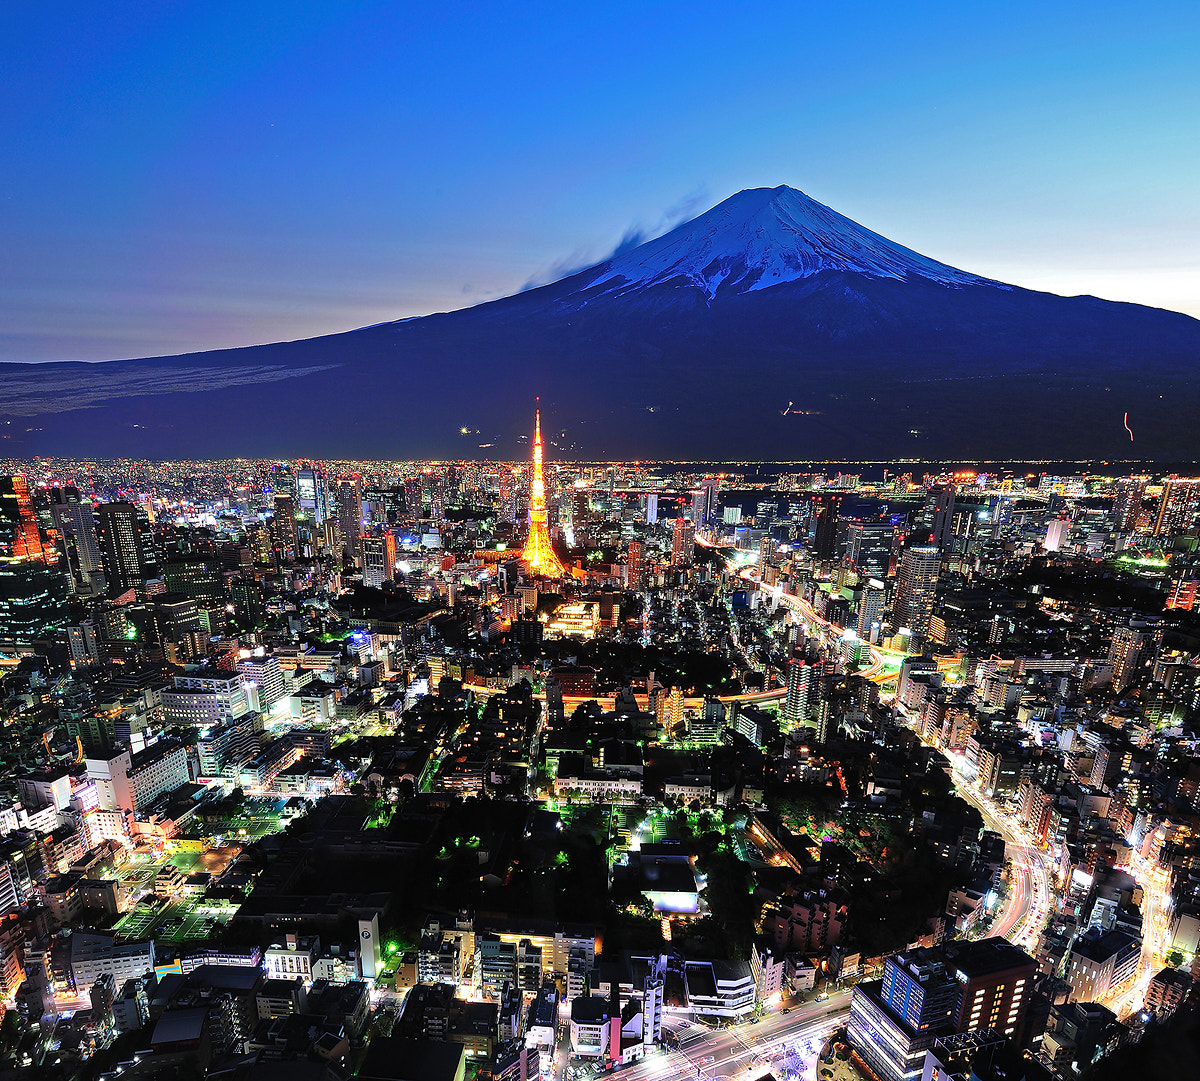 Photograph Mt Fuji and Tokyo city in twilight by skyearth skyice on 500px